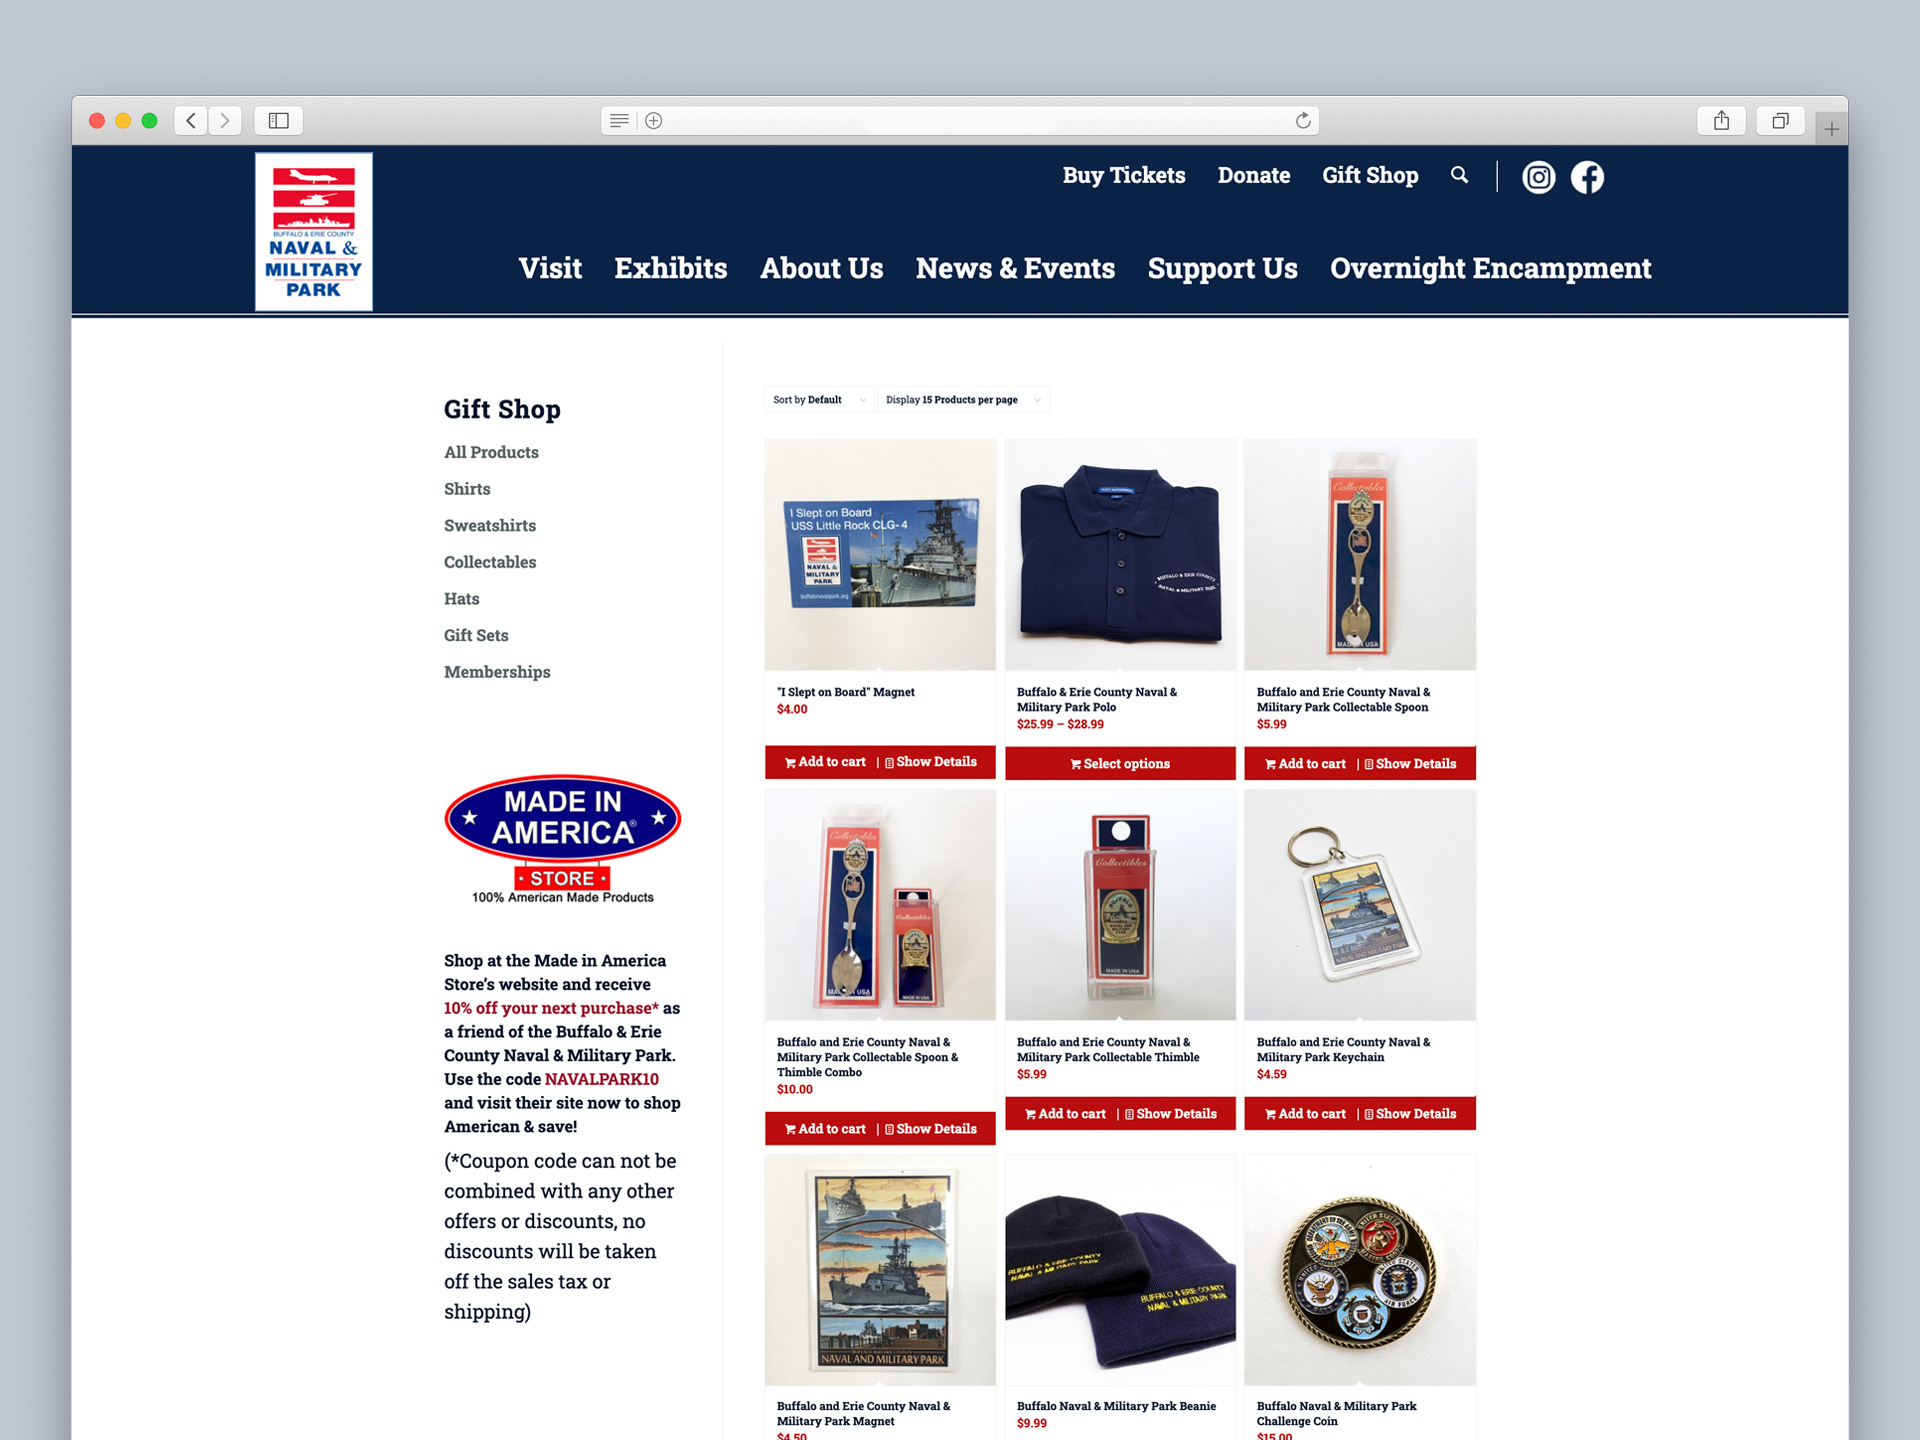 OtherWisz upgraded the Ecommerce store on the Naval Park website, allowing visitors to purchase gifts and memorabilia remotely